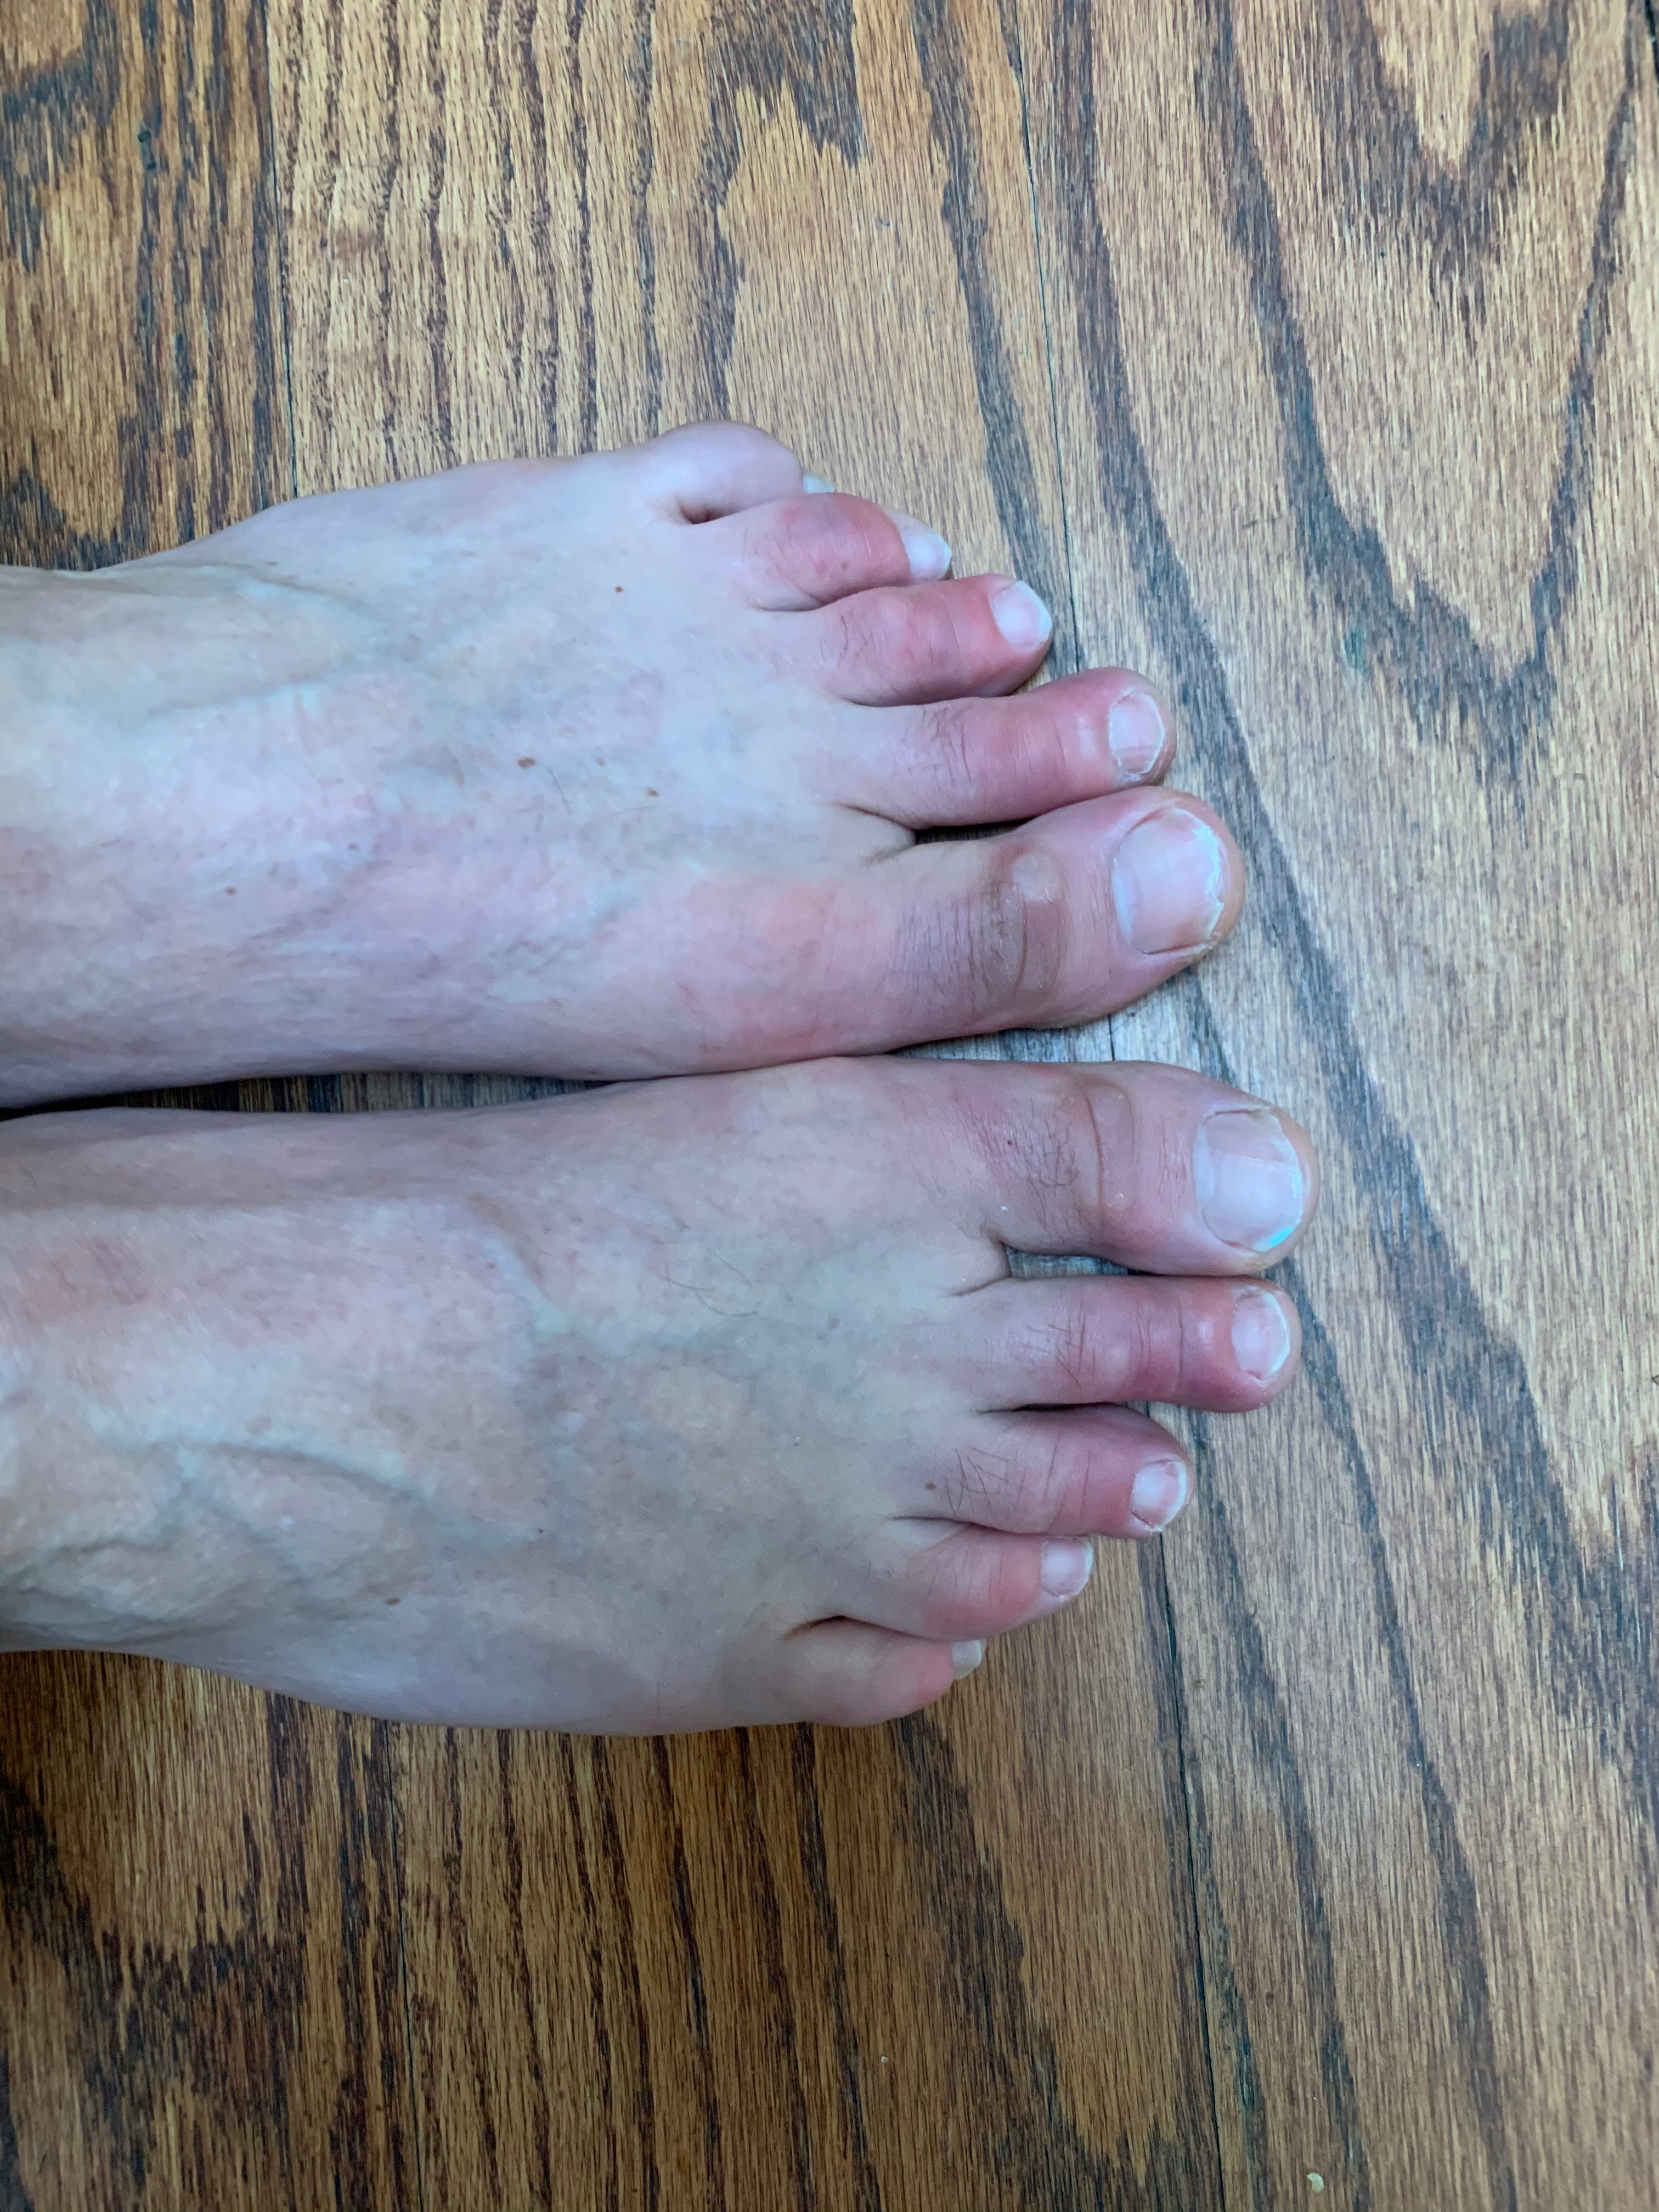 Image of COVID toes